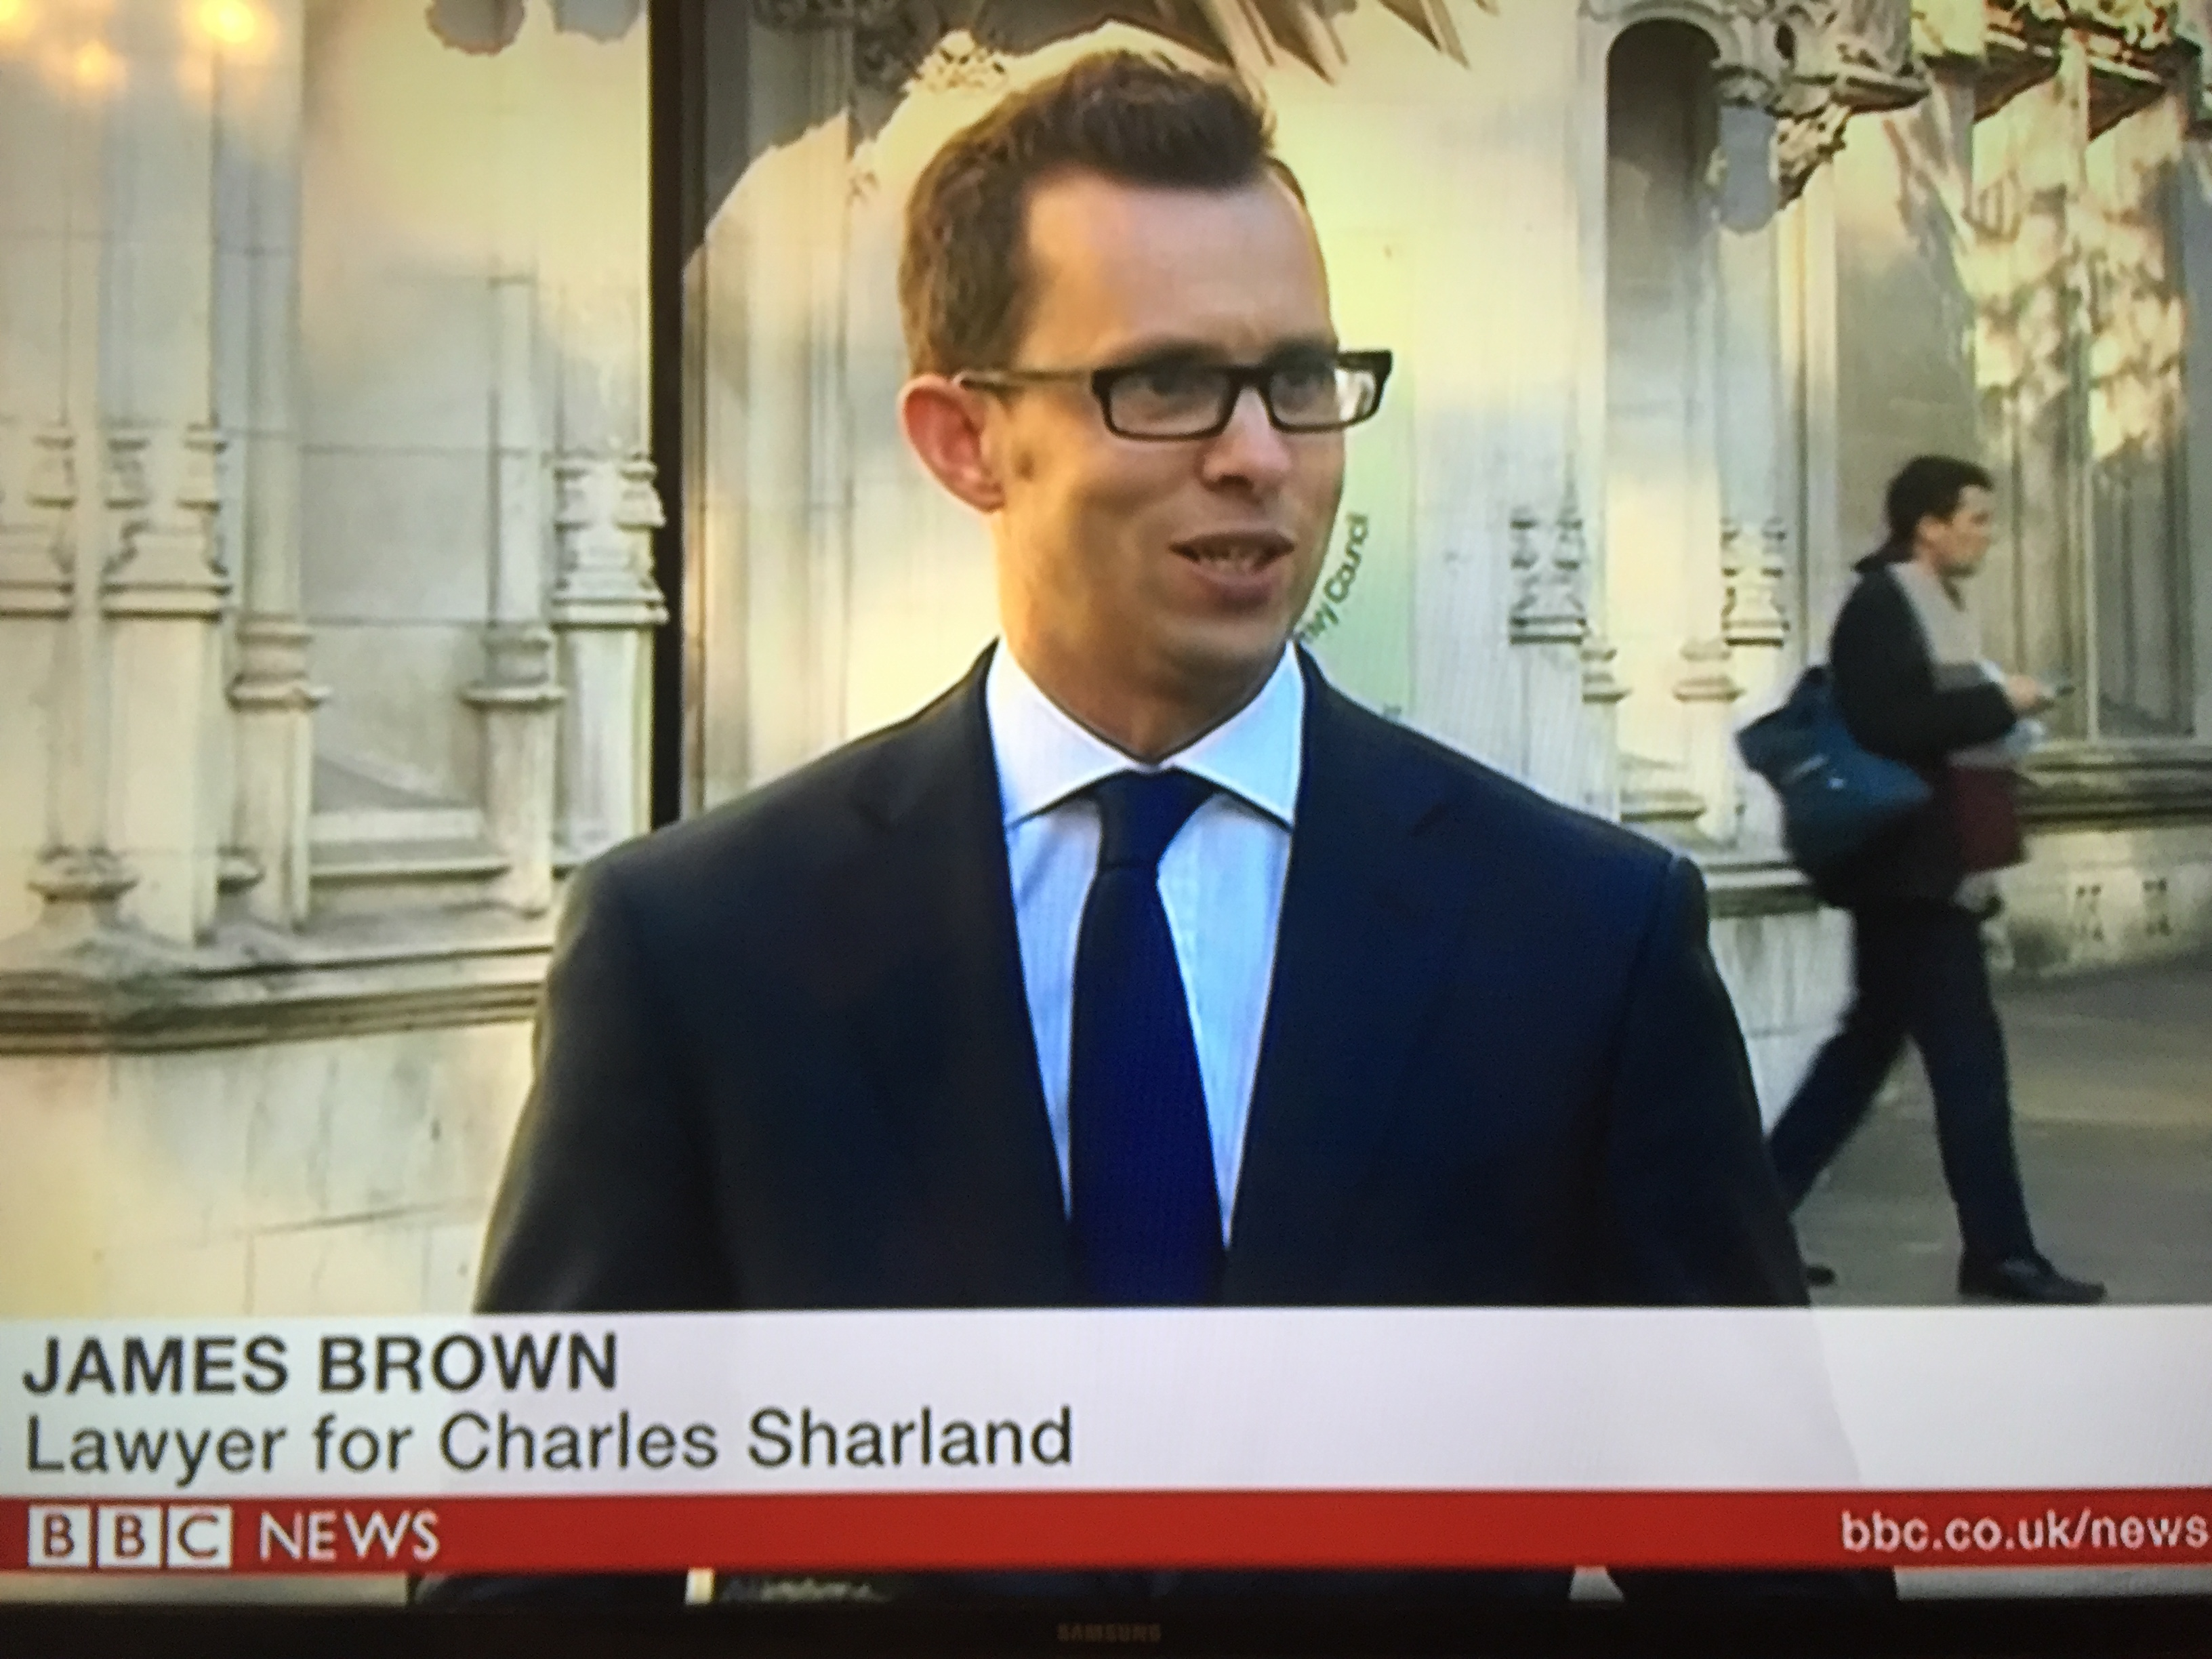 Sharland v Sharland - James Brown